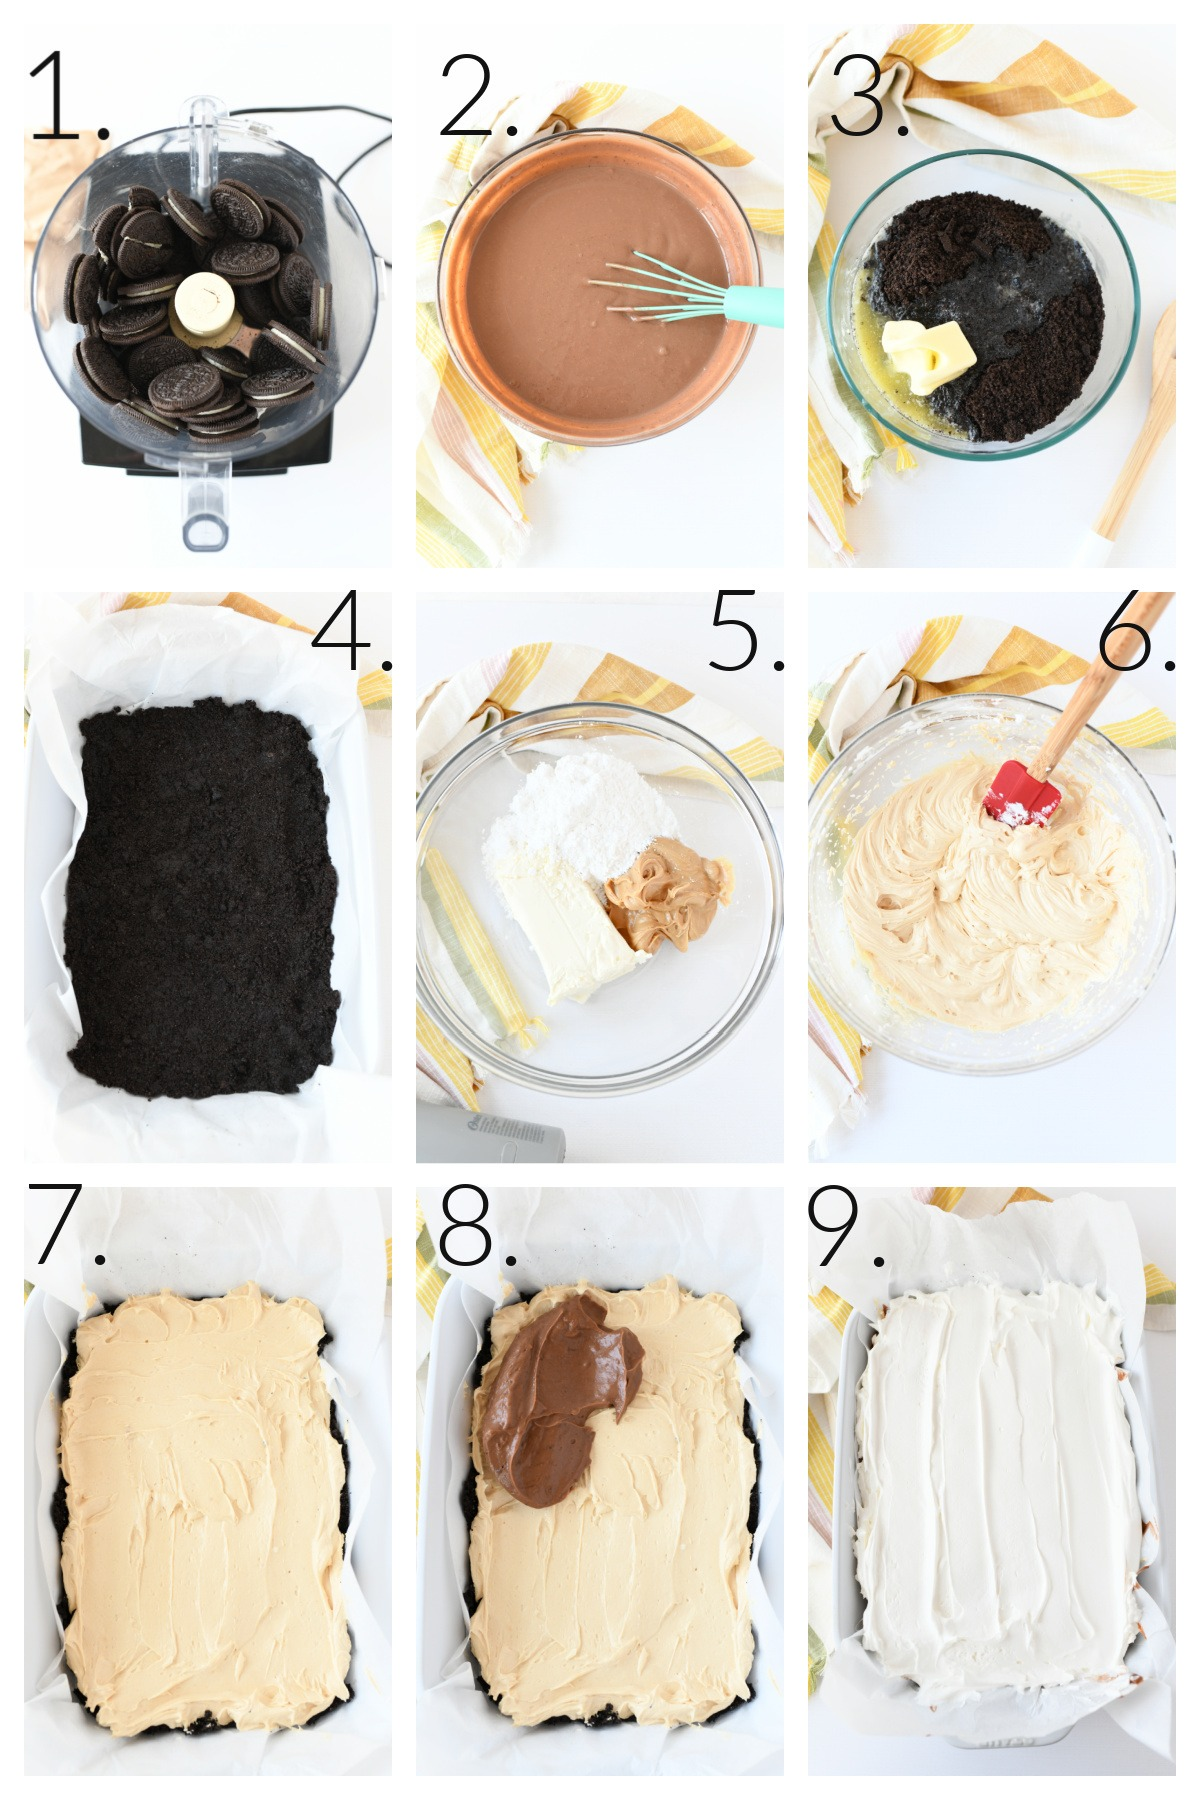 How to Make Peanut Butter Chocolate Lasagna. A 9 block grid on the steps to make this no-bake desserts.